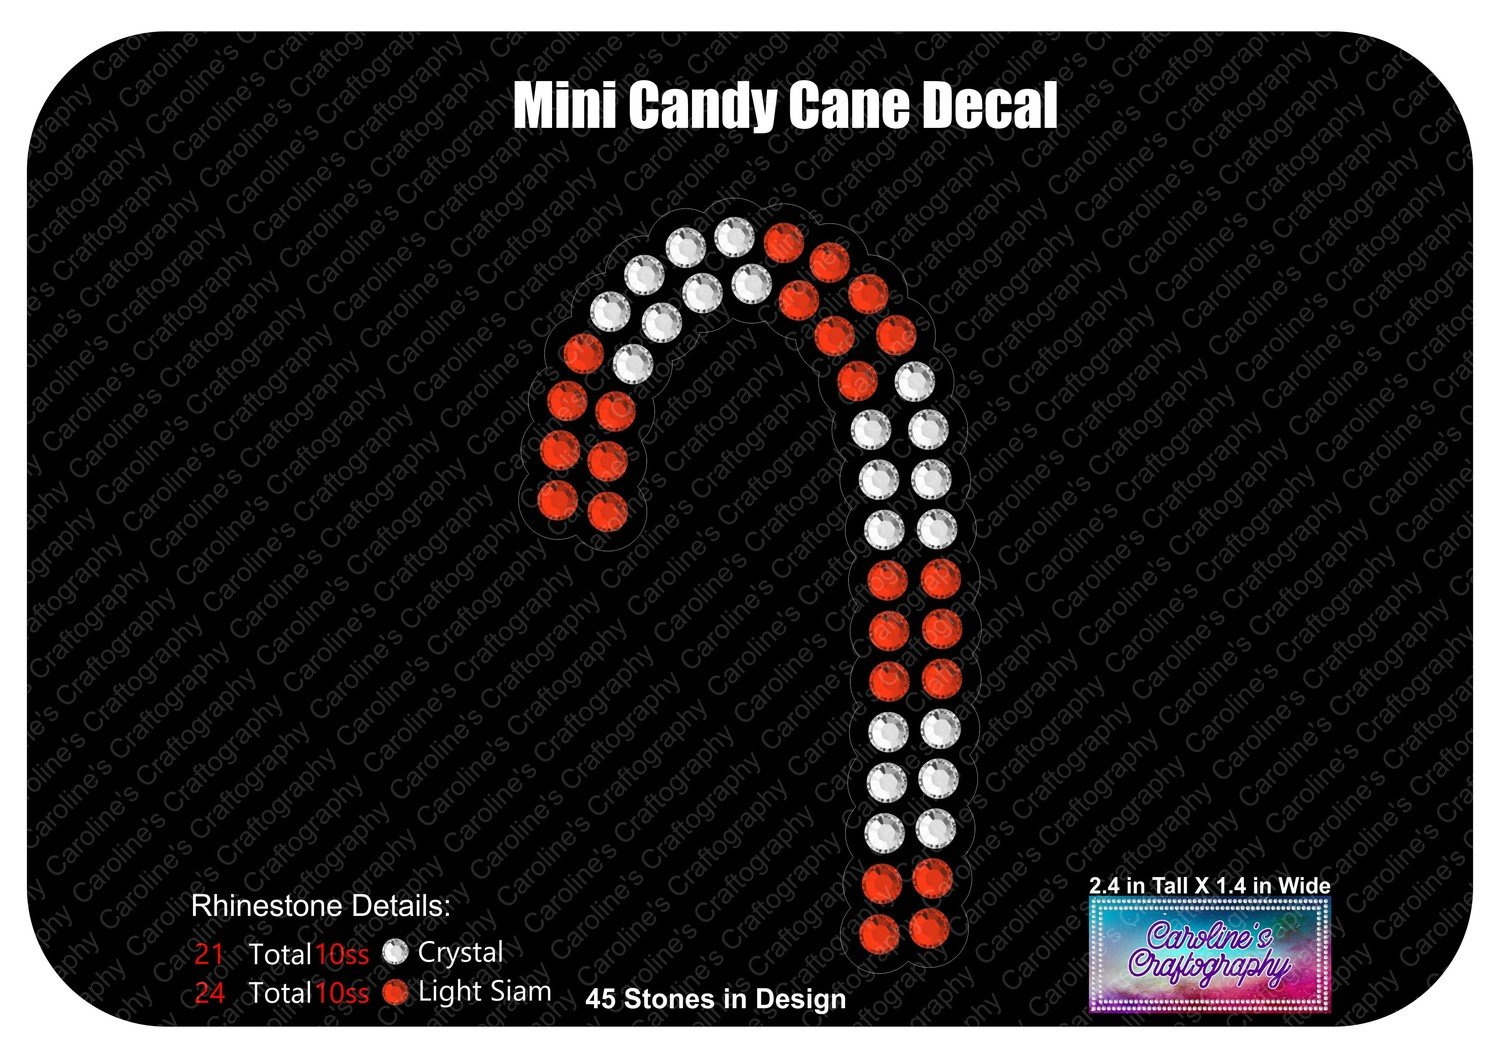 Mini Candy Cane Decal